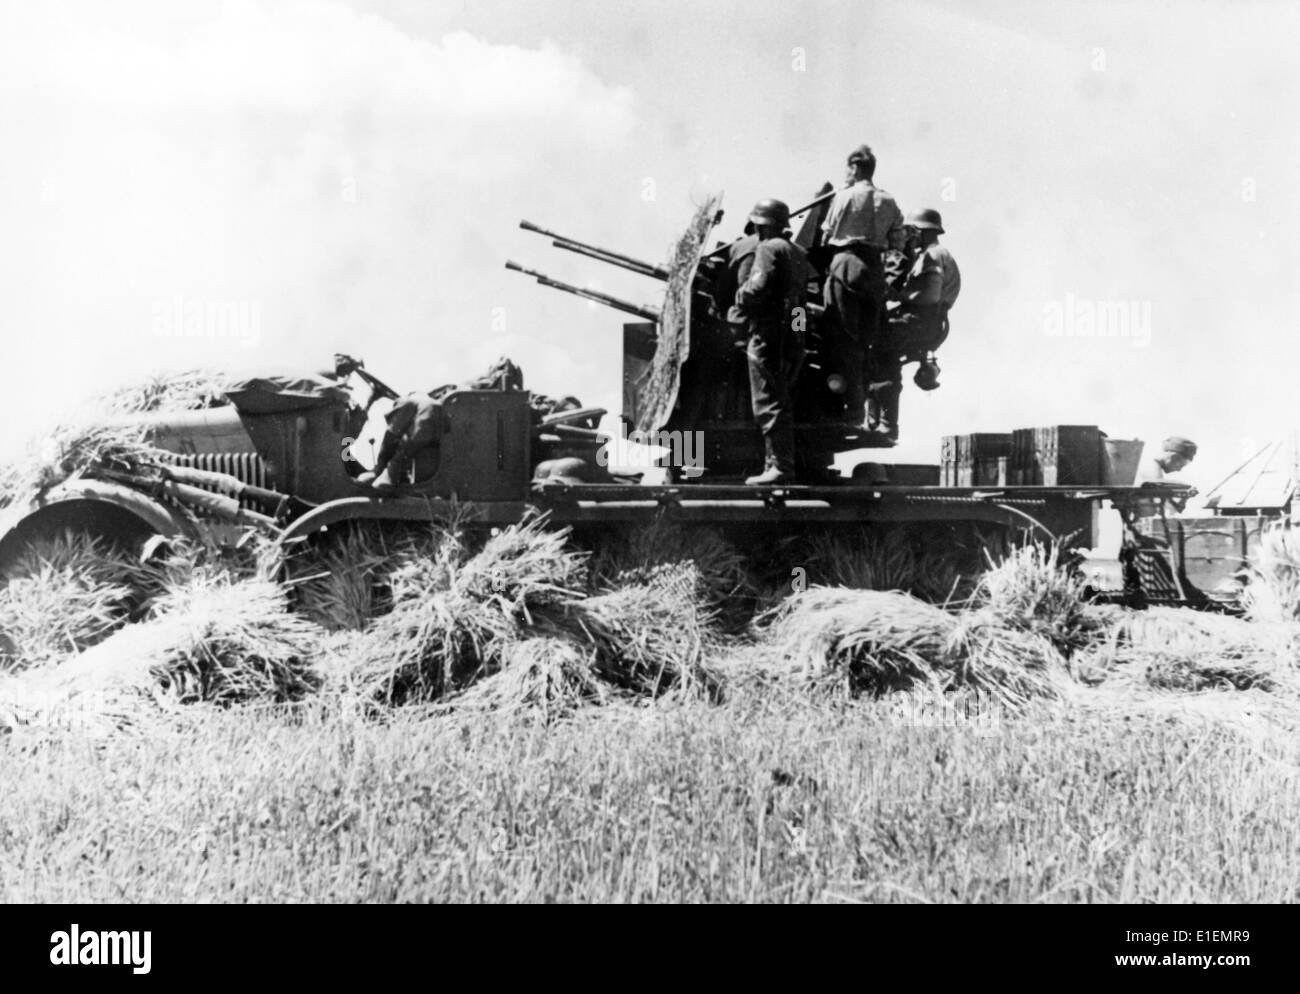 The picture from Nazi news reporting shows German soldiers crewing an anti-aircraft gun for the defence against Stock Photo